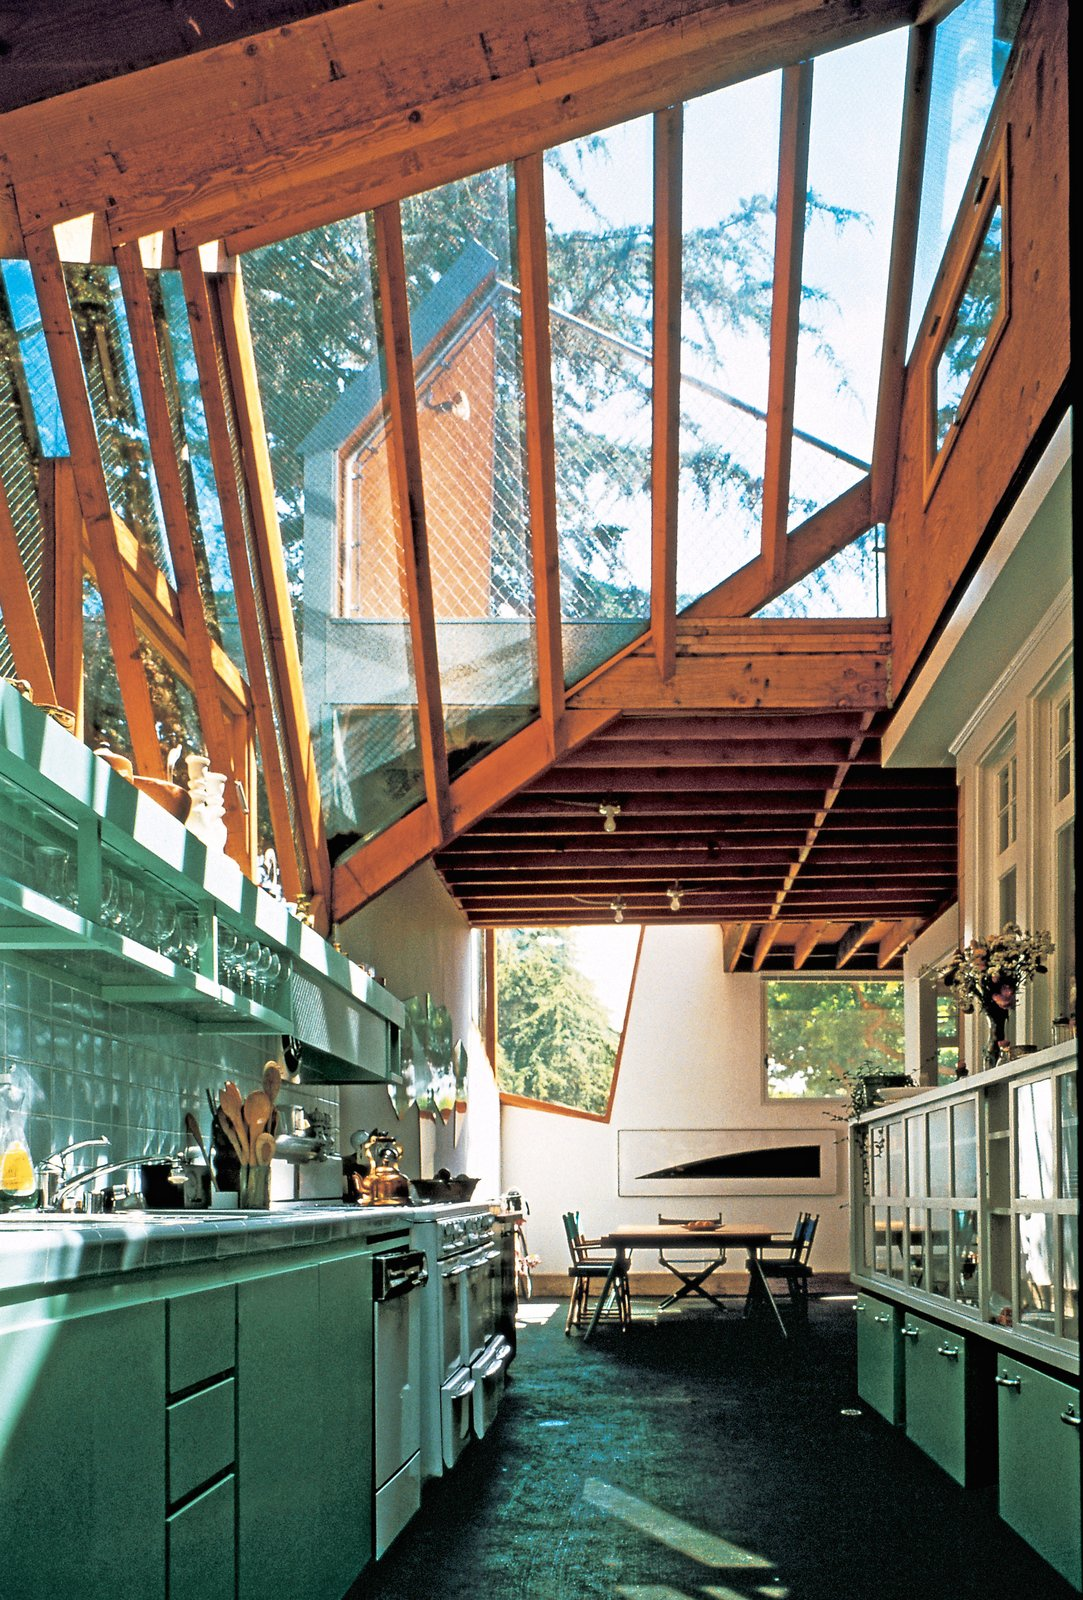 Frank Gehry buildings, Gehry House, Gehry Residence